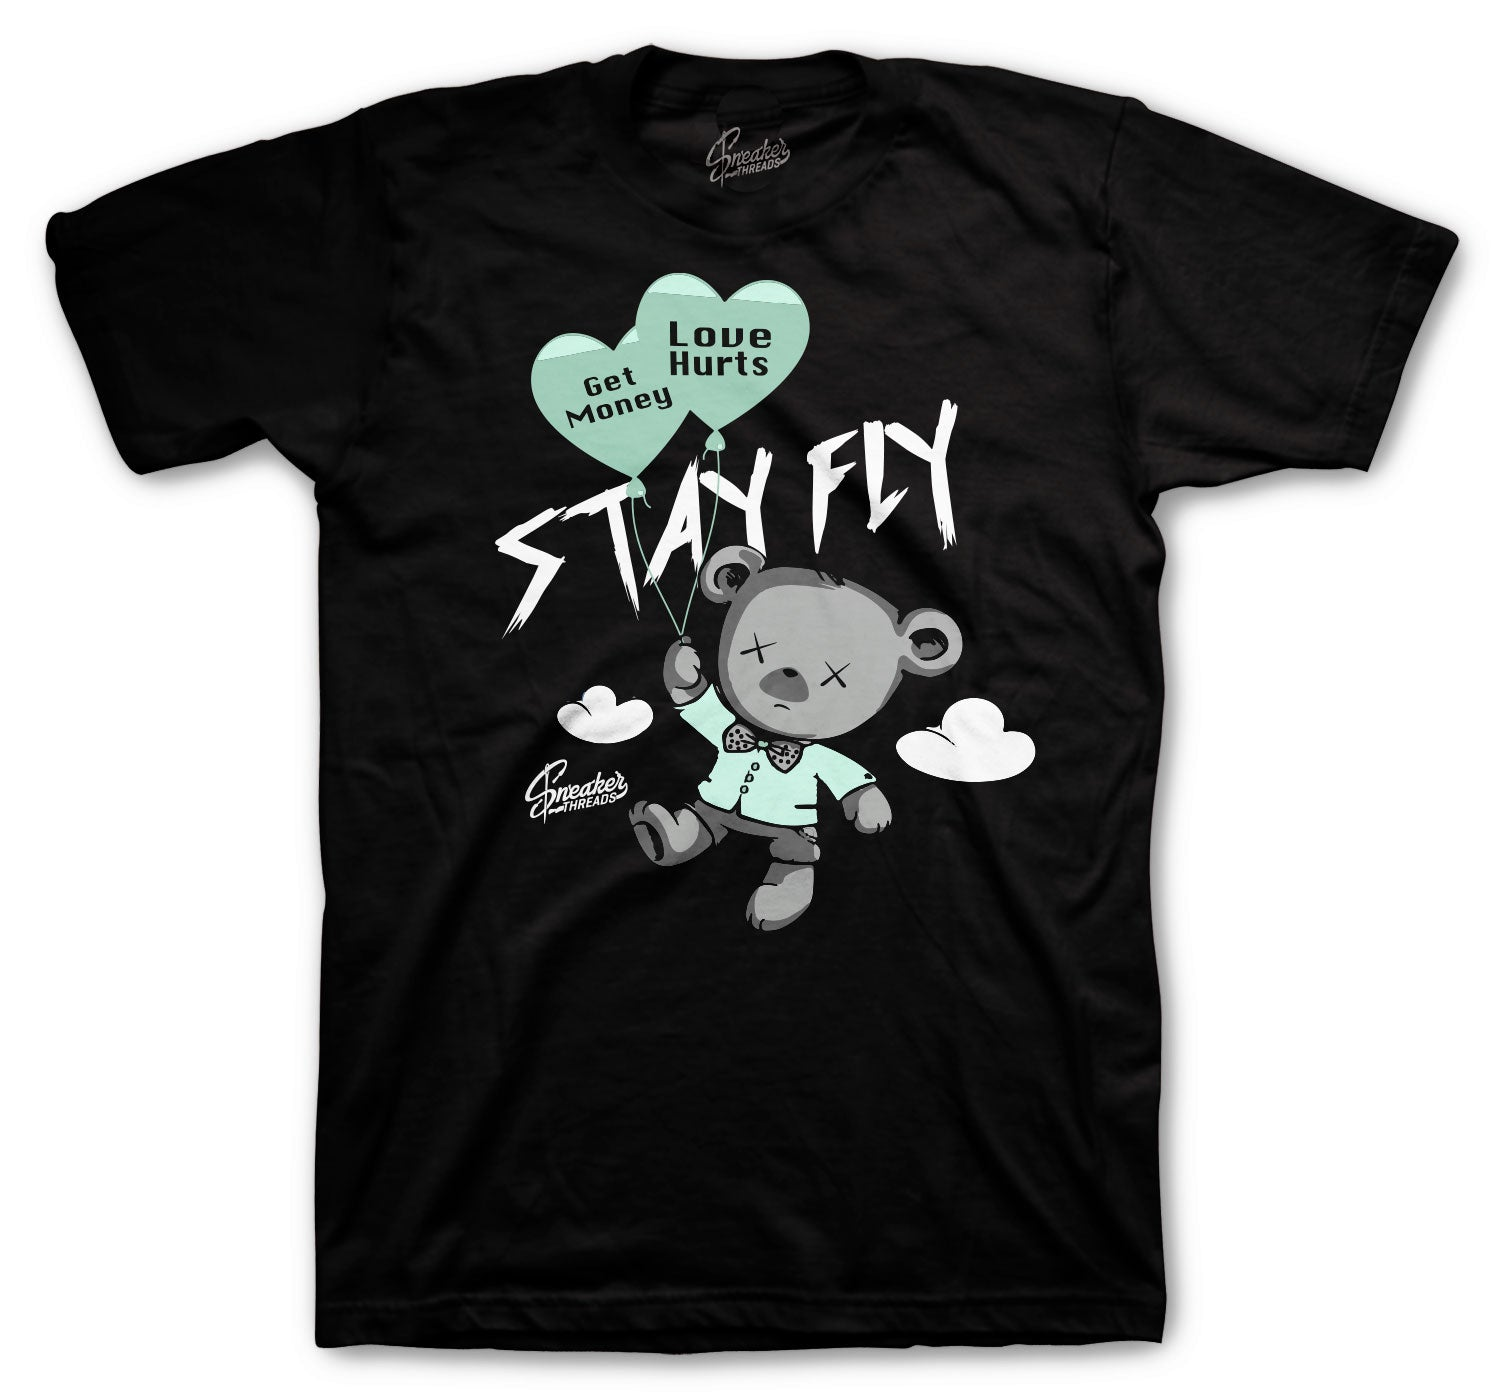 Barely Green All Star Shirt - Money Over Love - Black